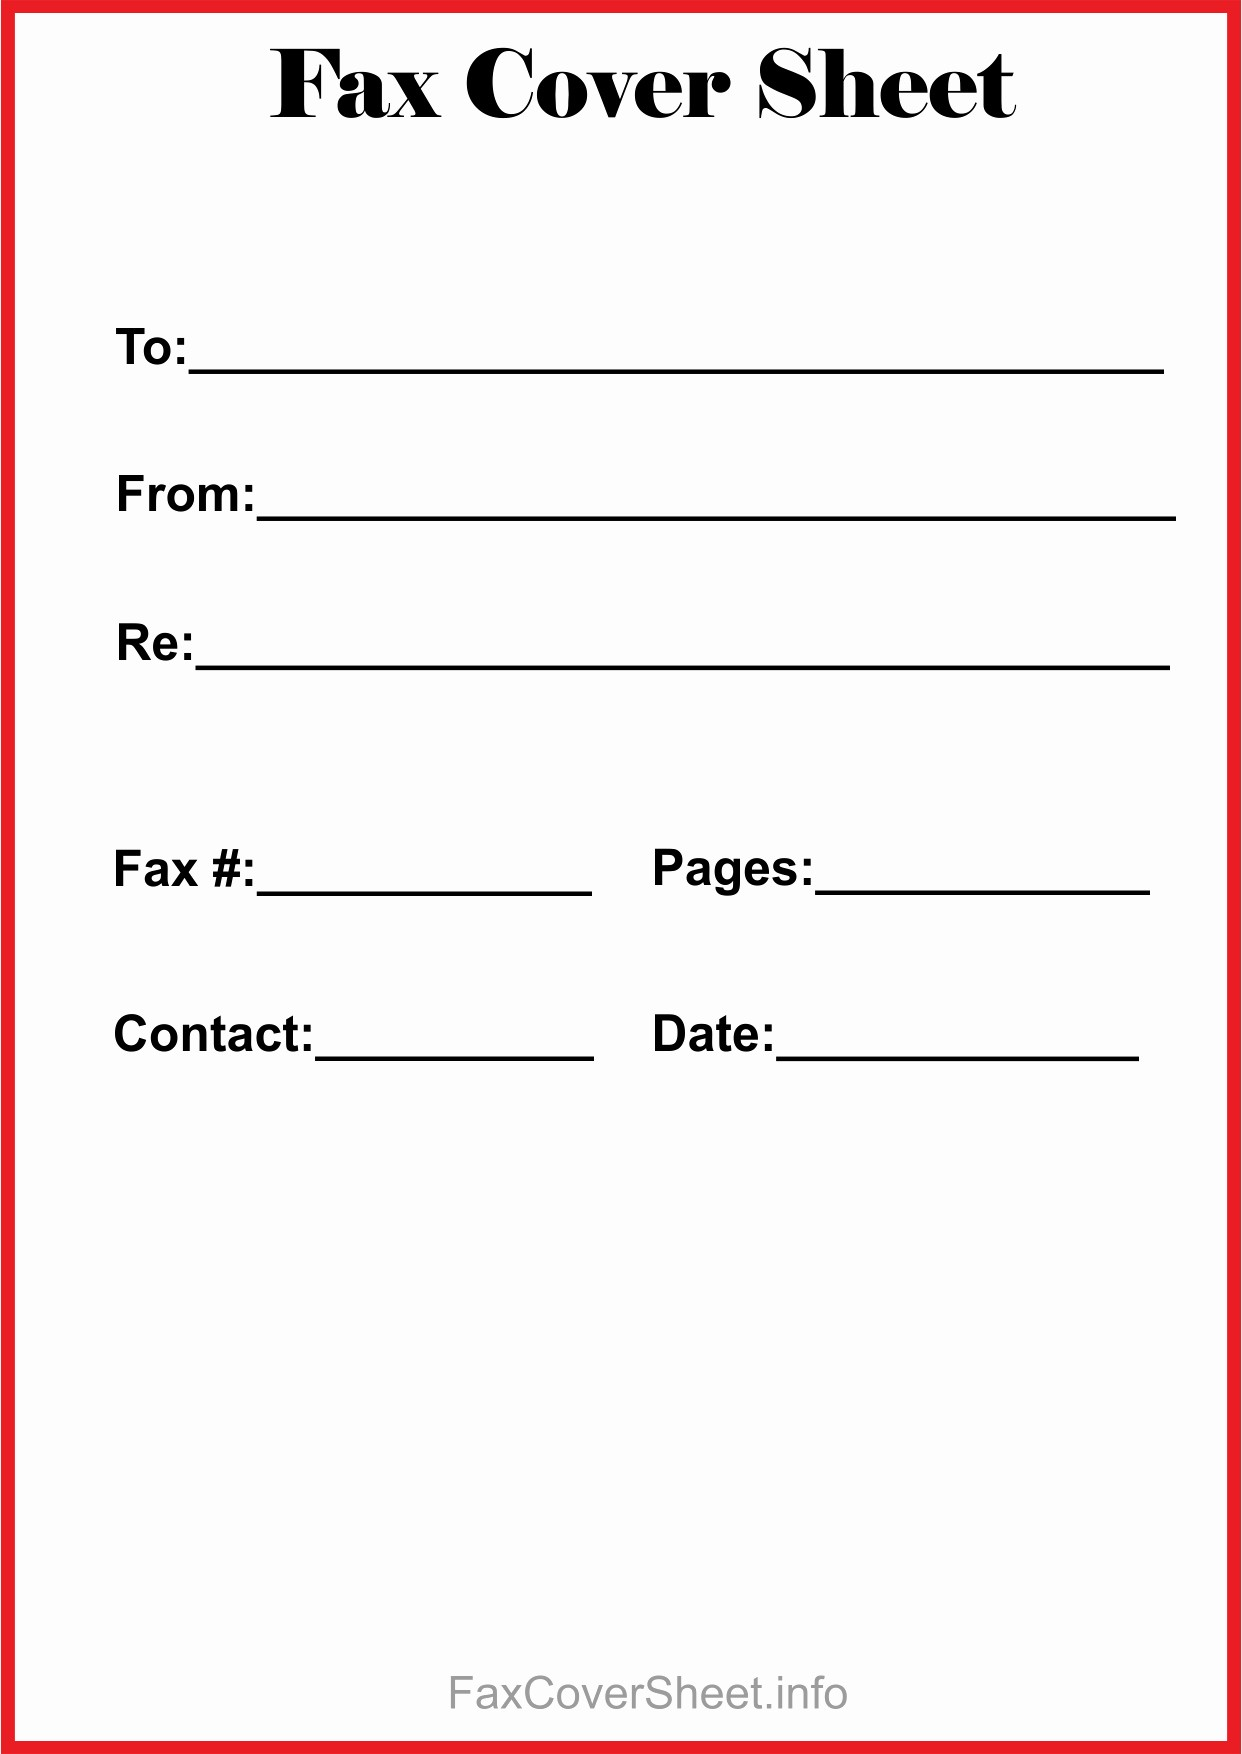 Fax Cover Sheet Sample Pdf Beautiful Free Fax Cover Sheet Template Download